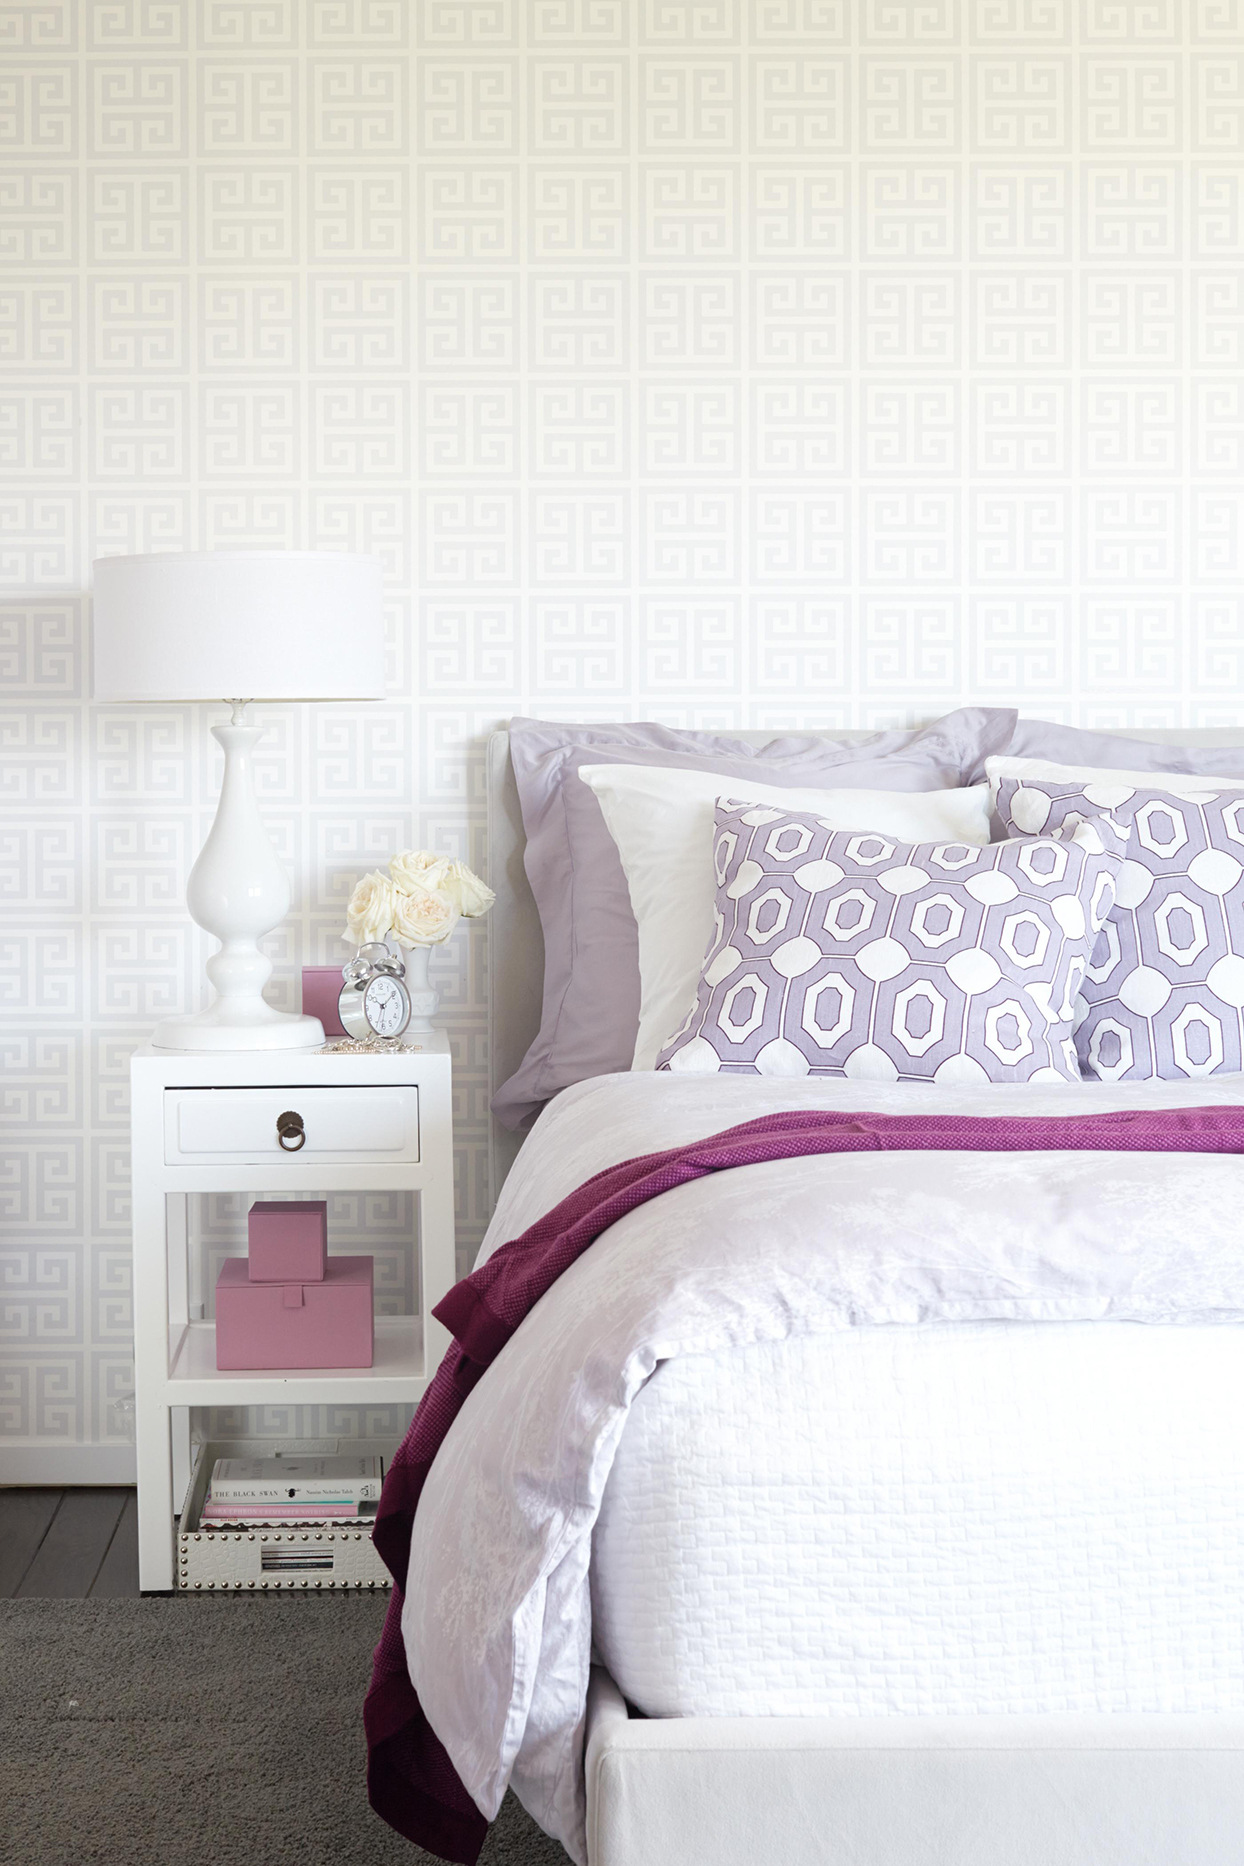 Icy Gray + Orchid + Lavender bedroom with patterned wallpaper